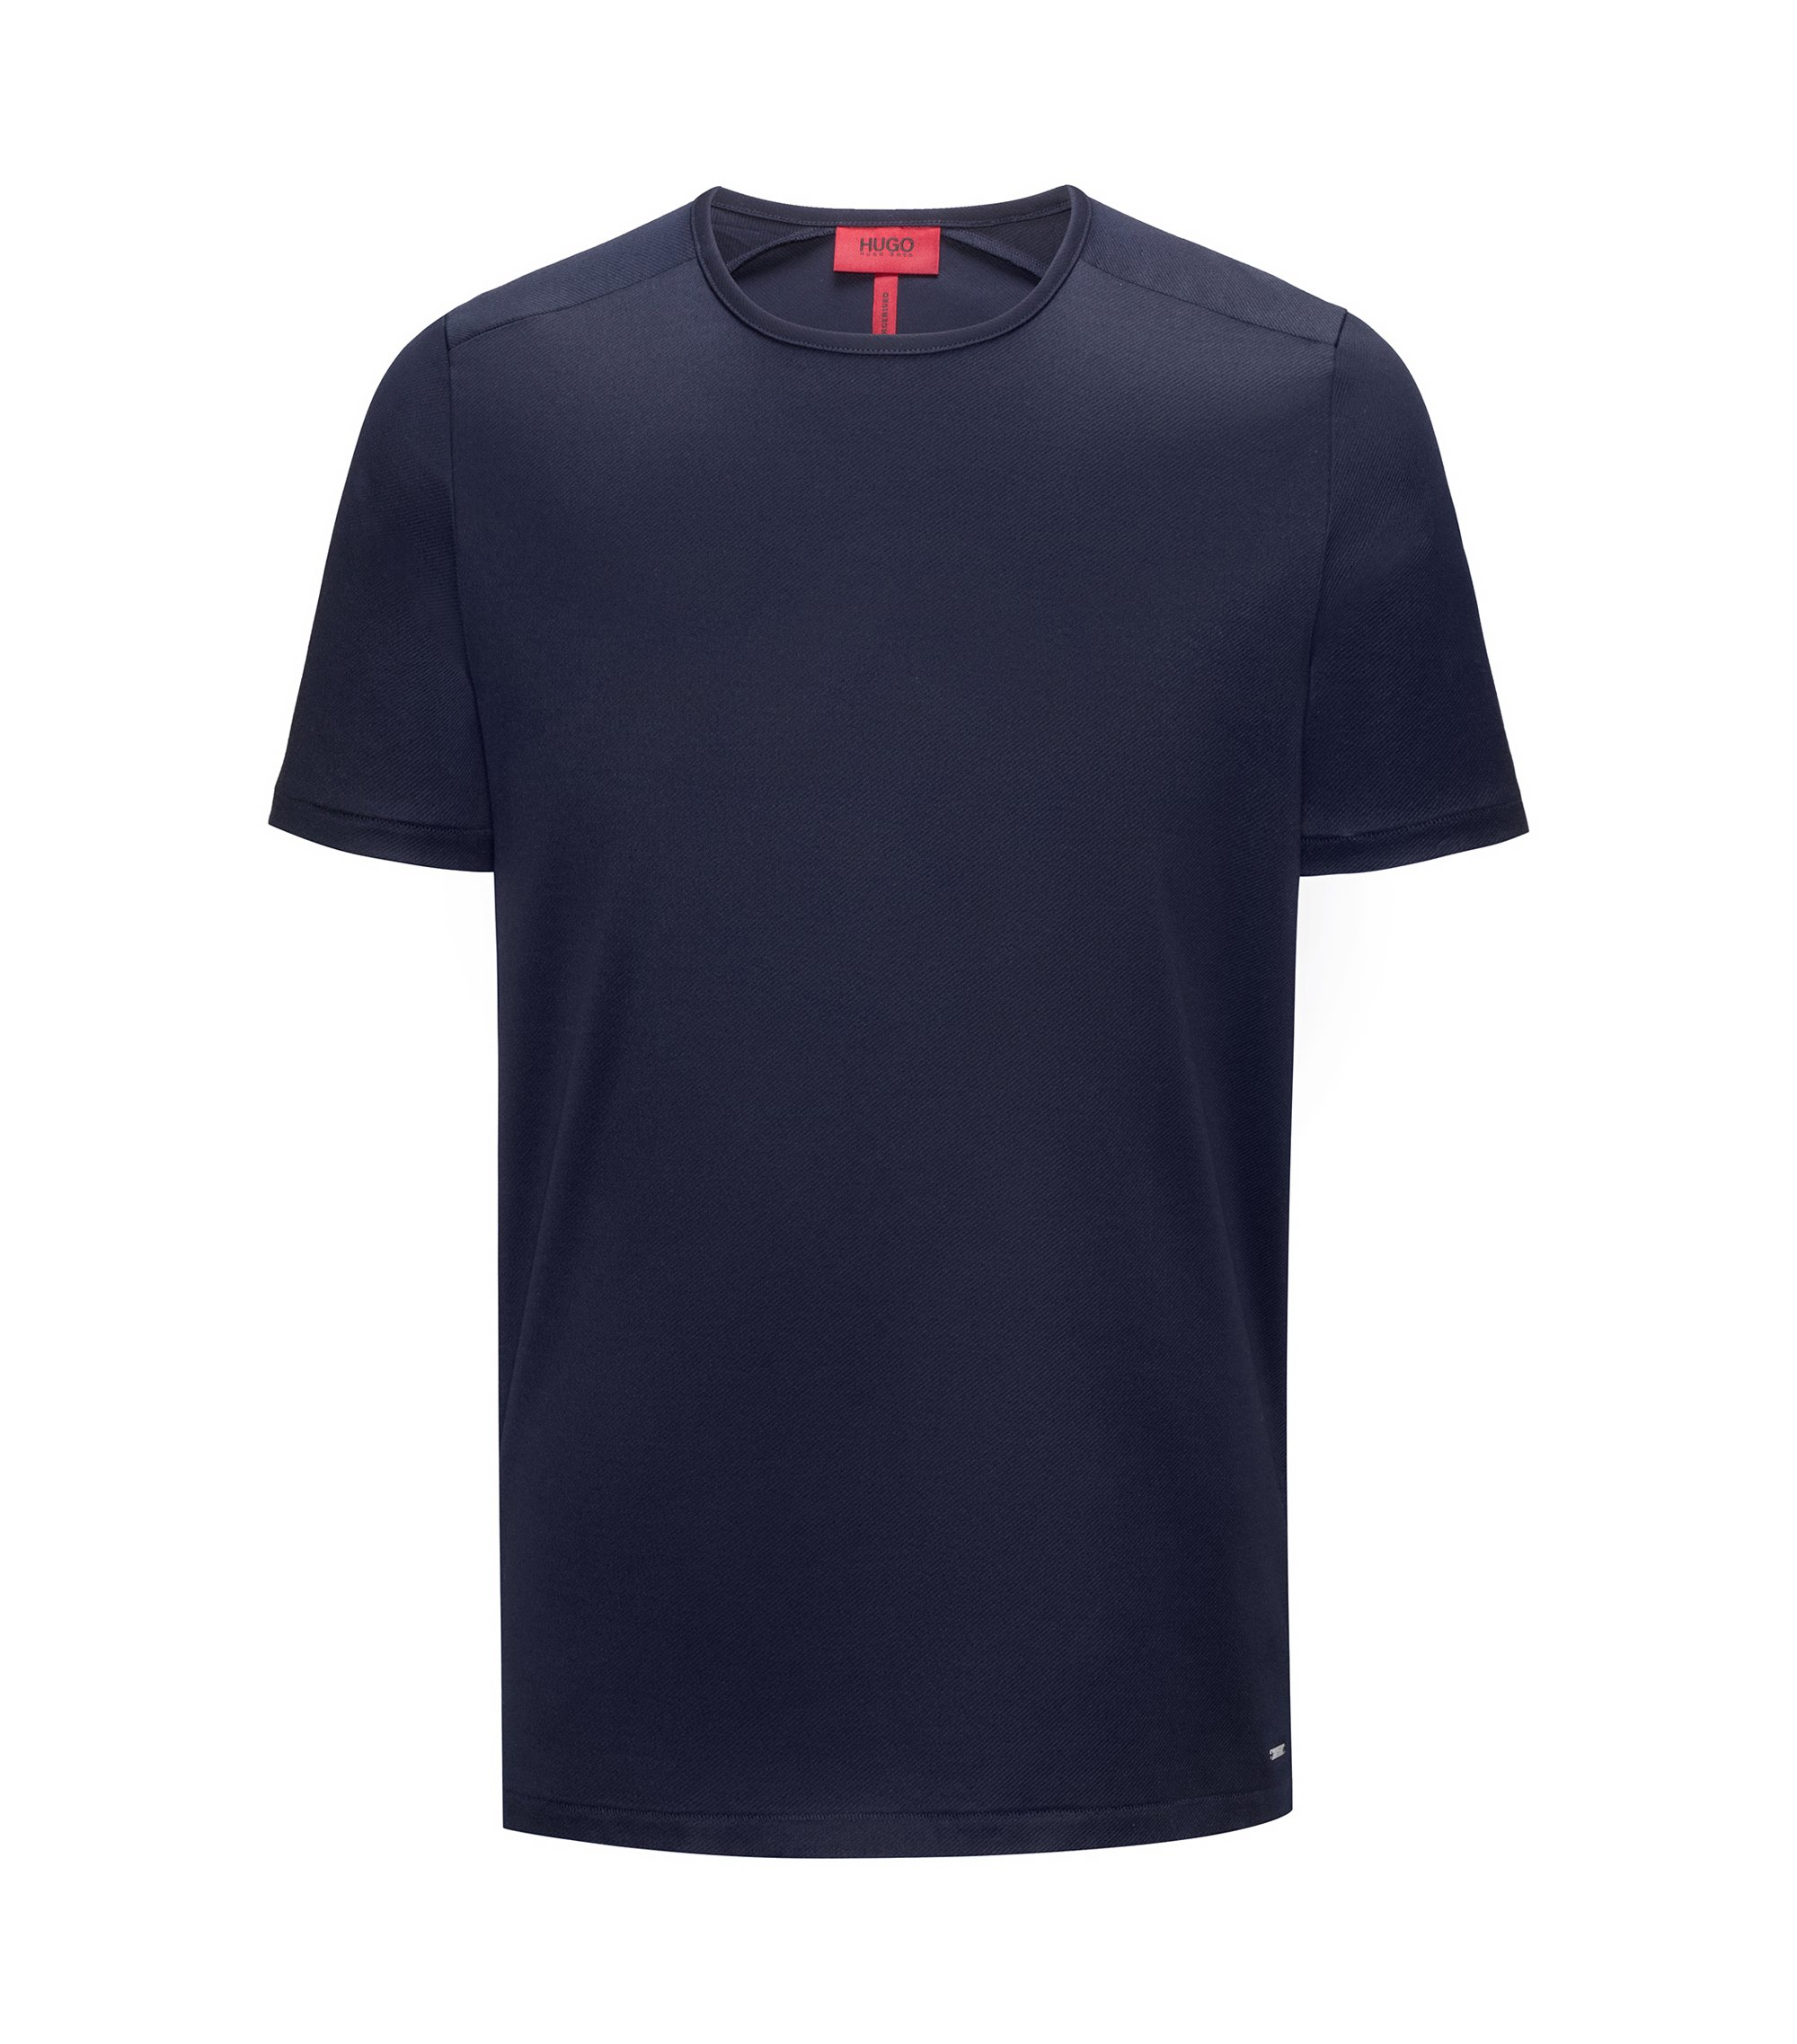 Crew-neck T-shirt in mercerised interlock twill cotton, Dark Blue